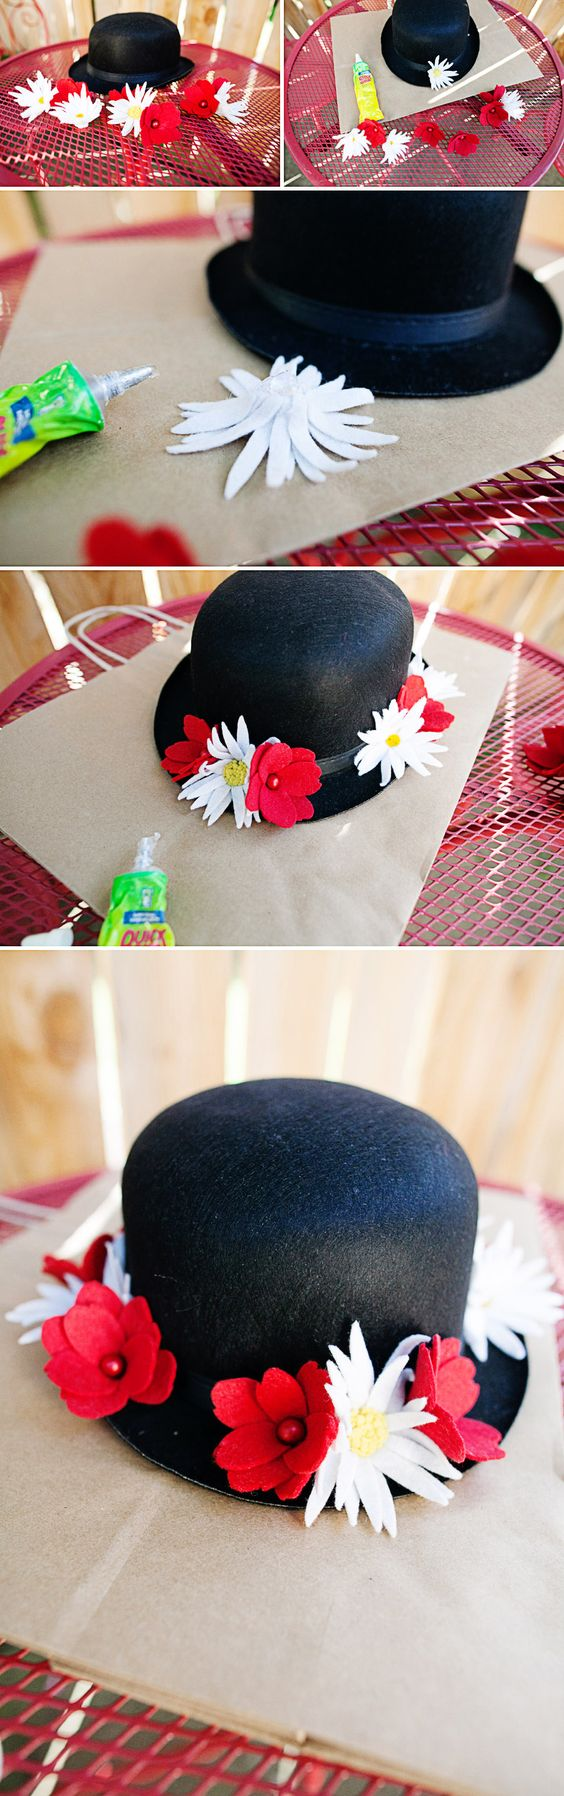 DIY Mary Poppins Hat Tutorial.